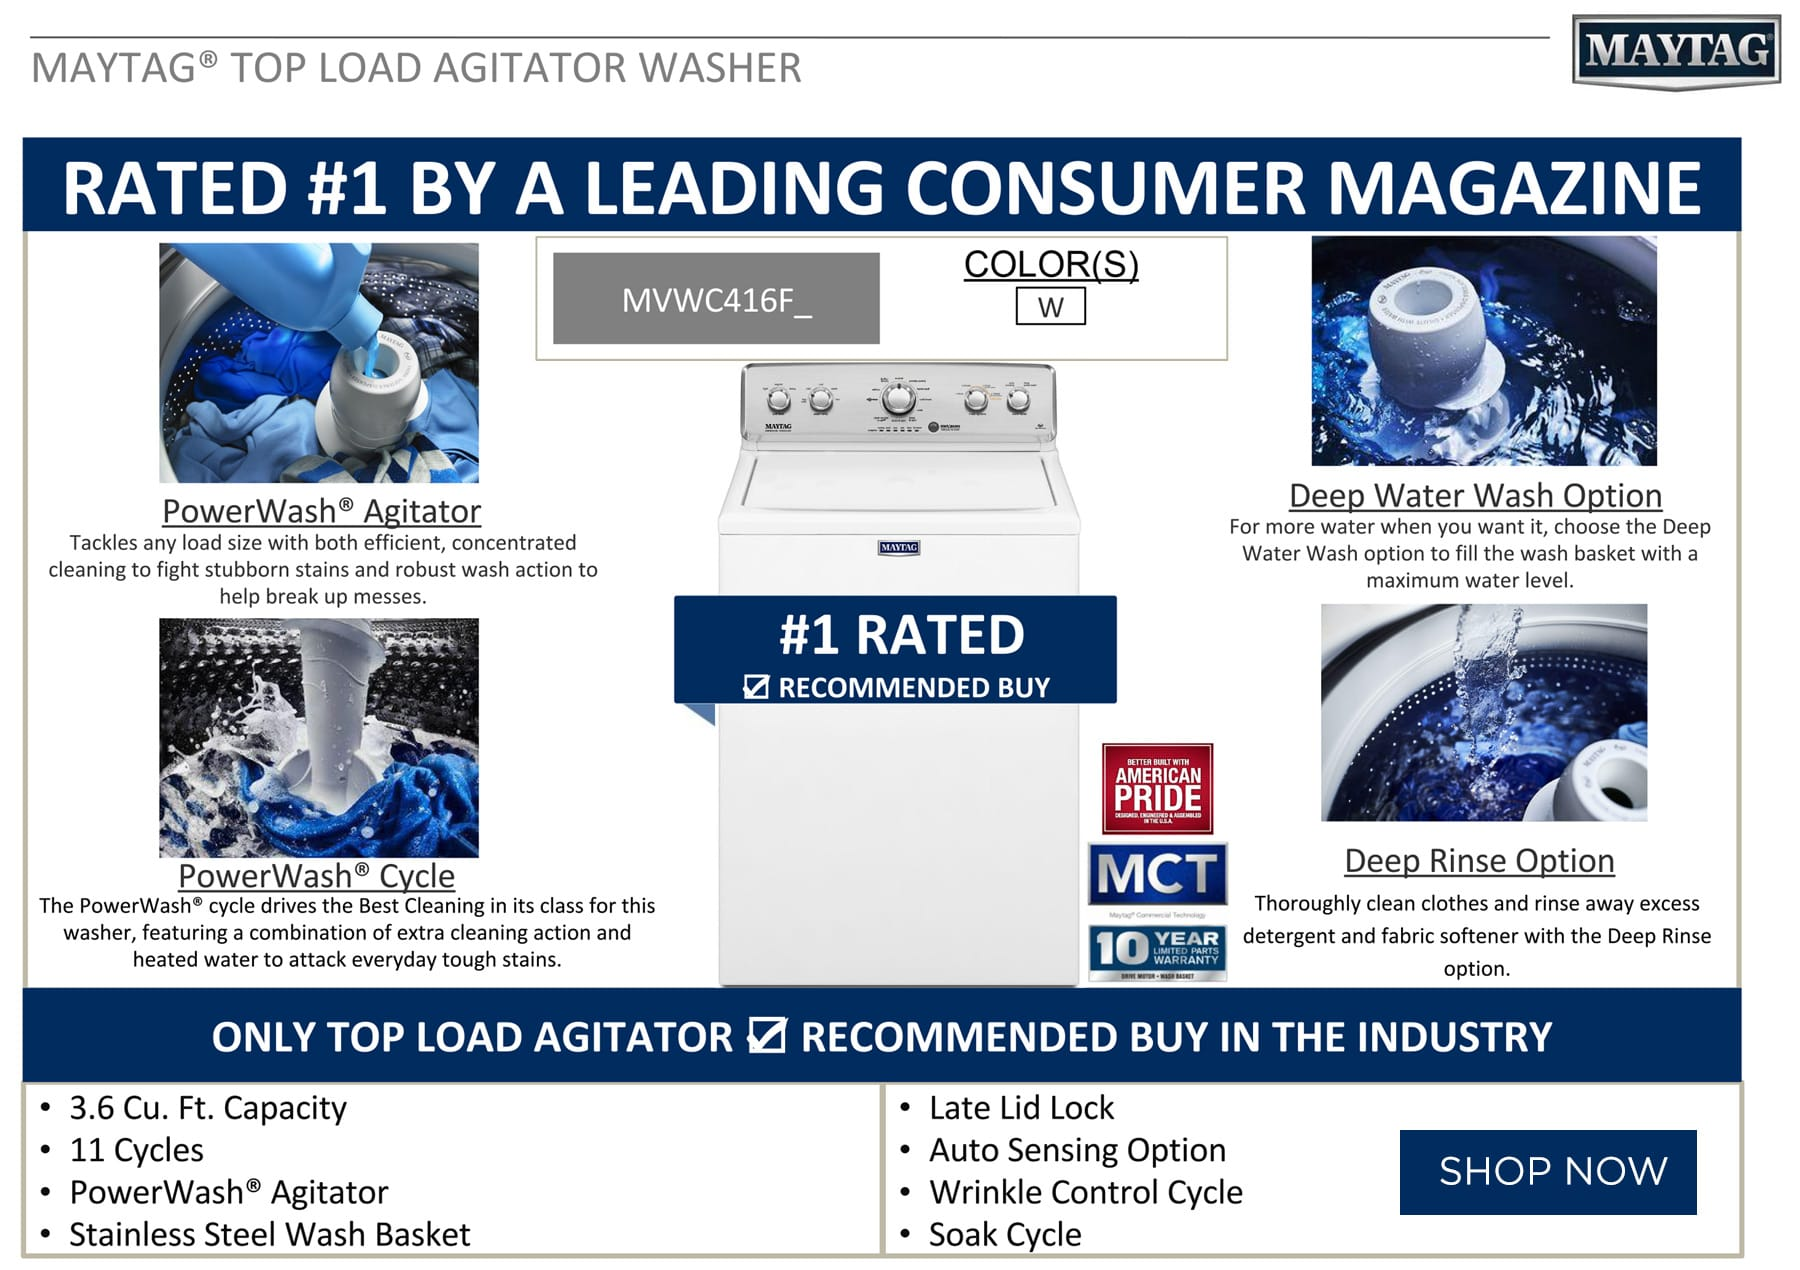 Maytag Washer Rated #1